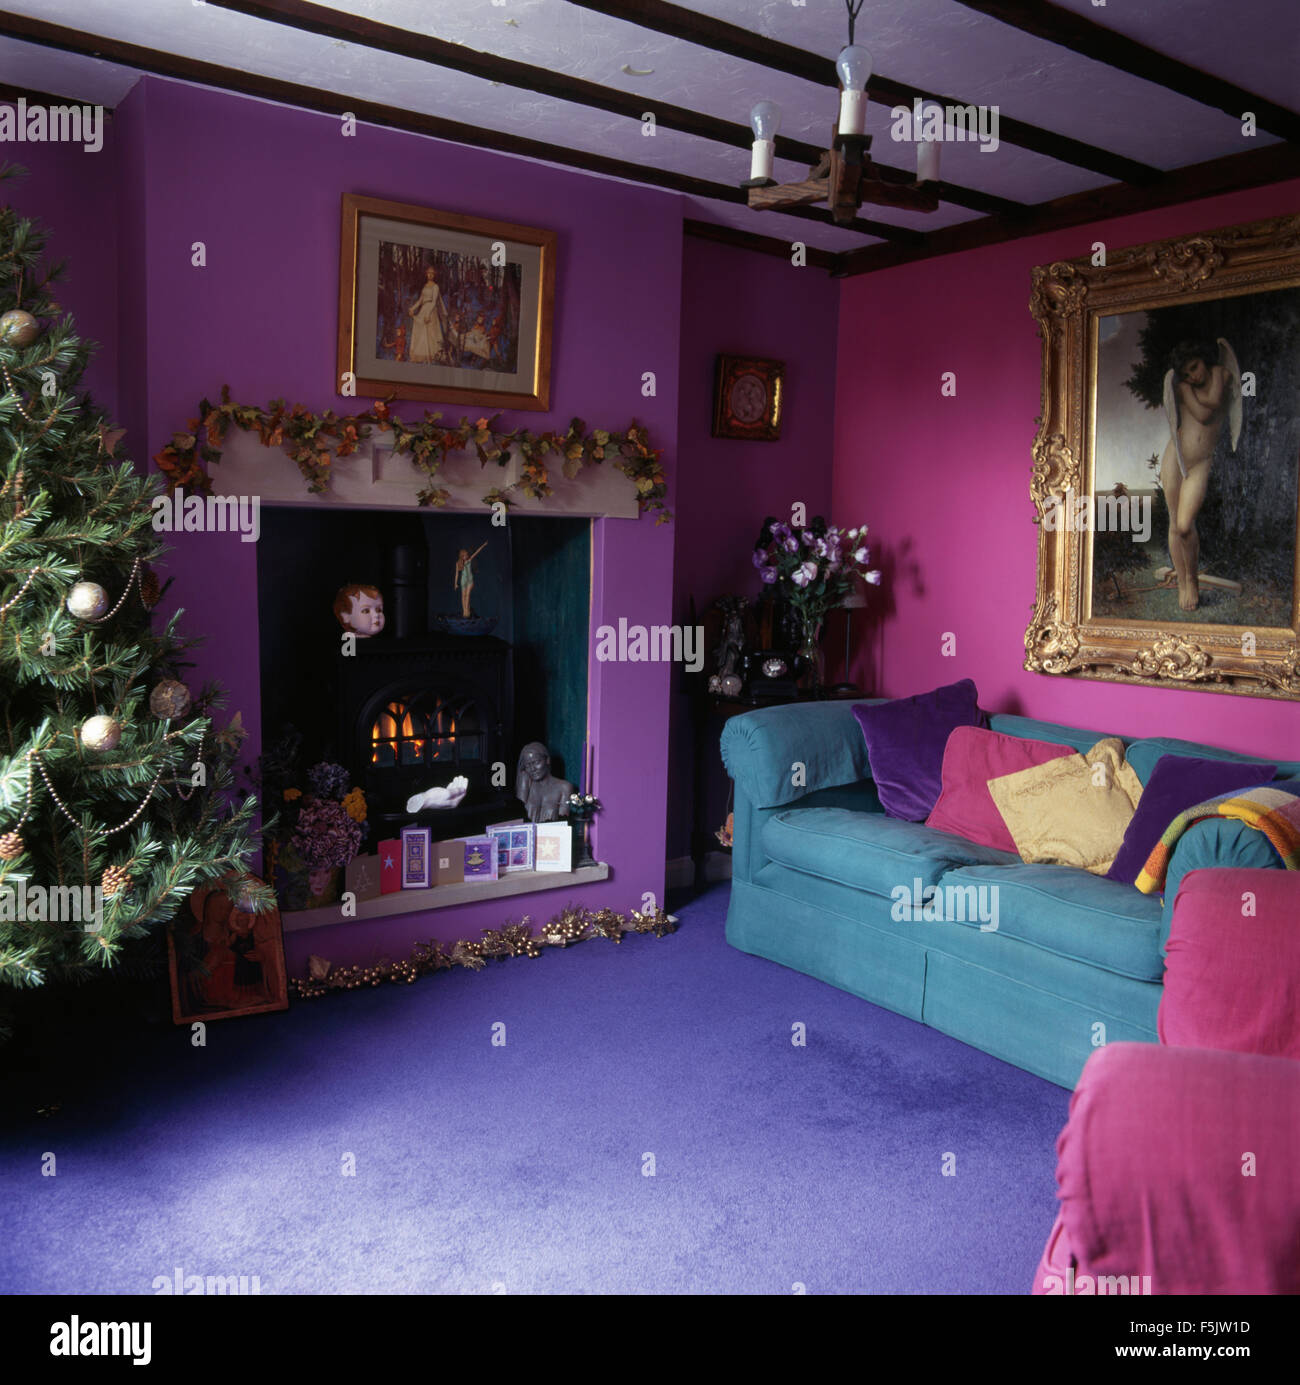 Bright blue carpet and turquoise sofa in purple and pink nineties living room with a decorated christmas tree